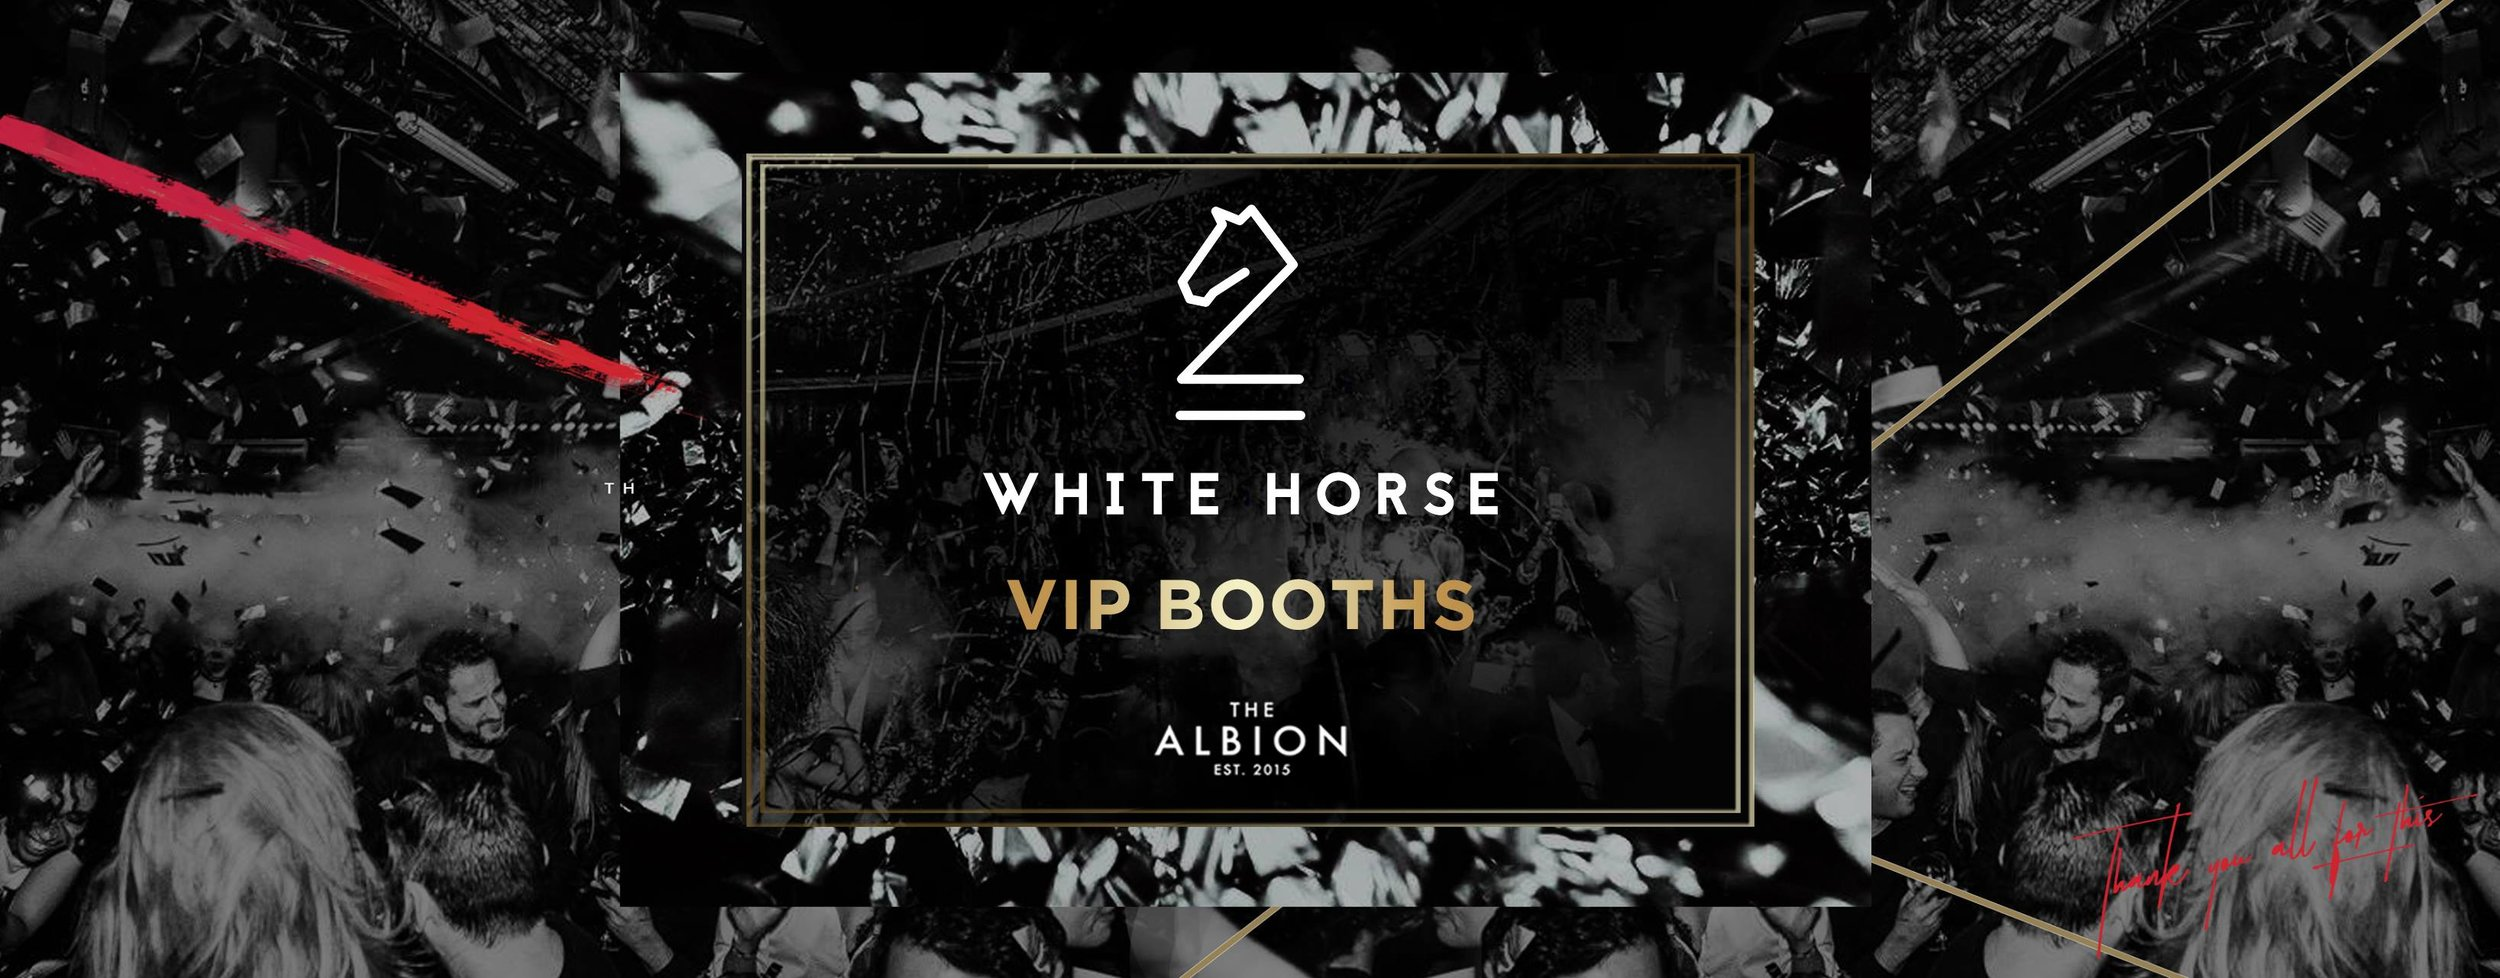 White Horse VIP Booths